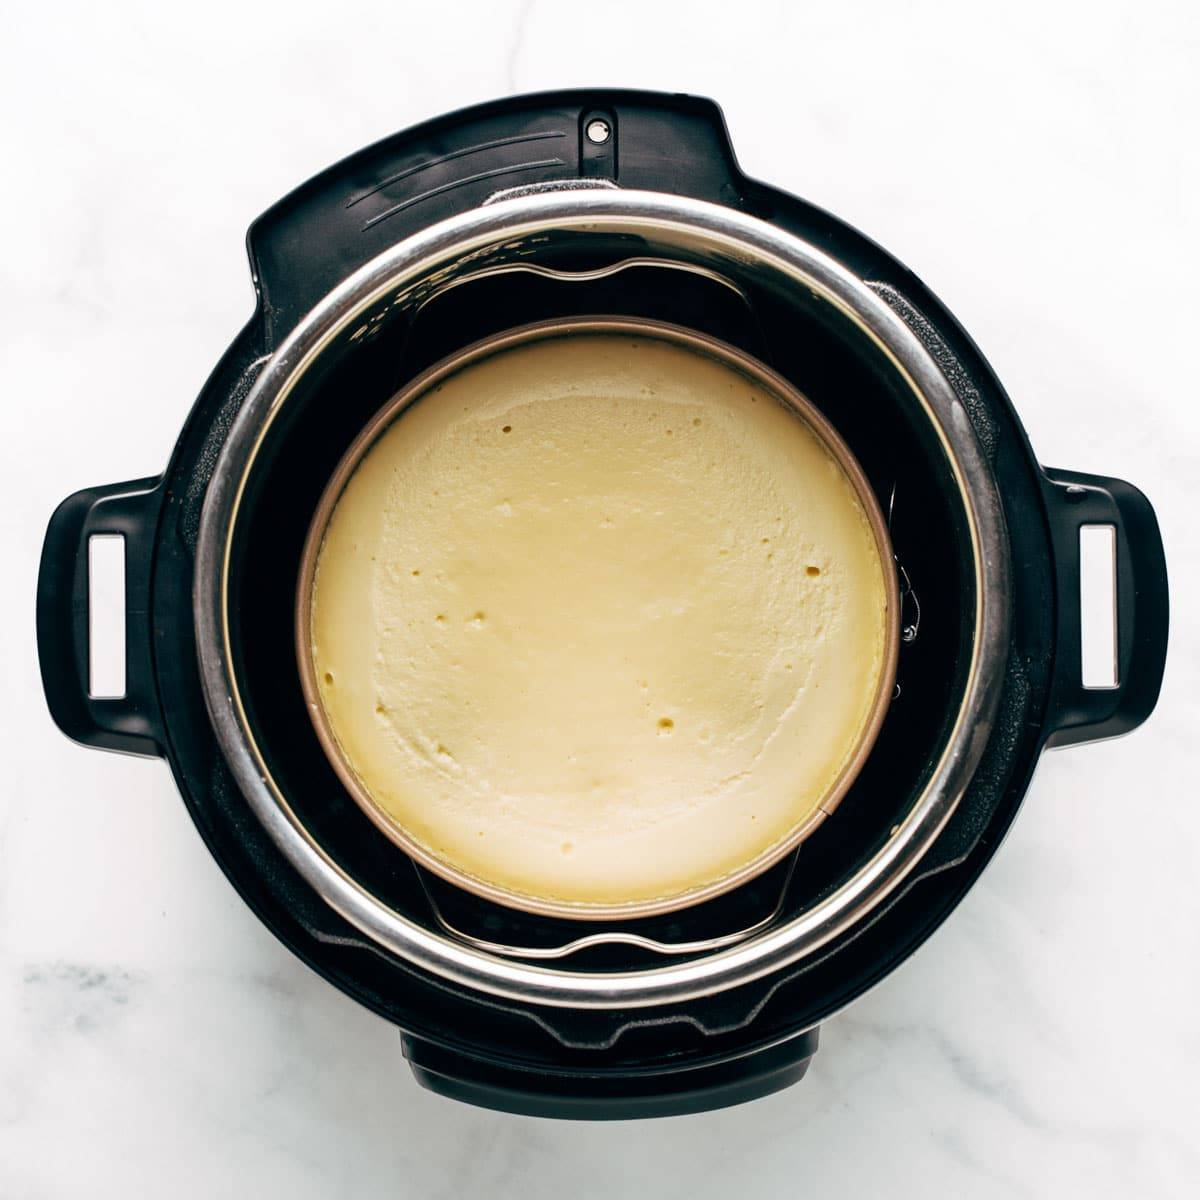 Cheesecake in the Instant Pot.